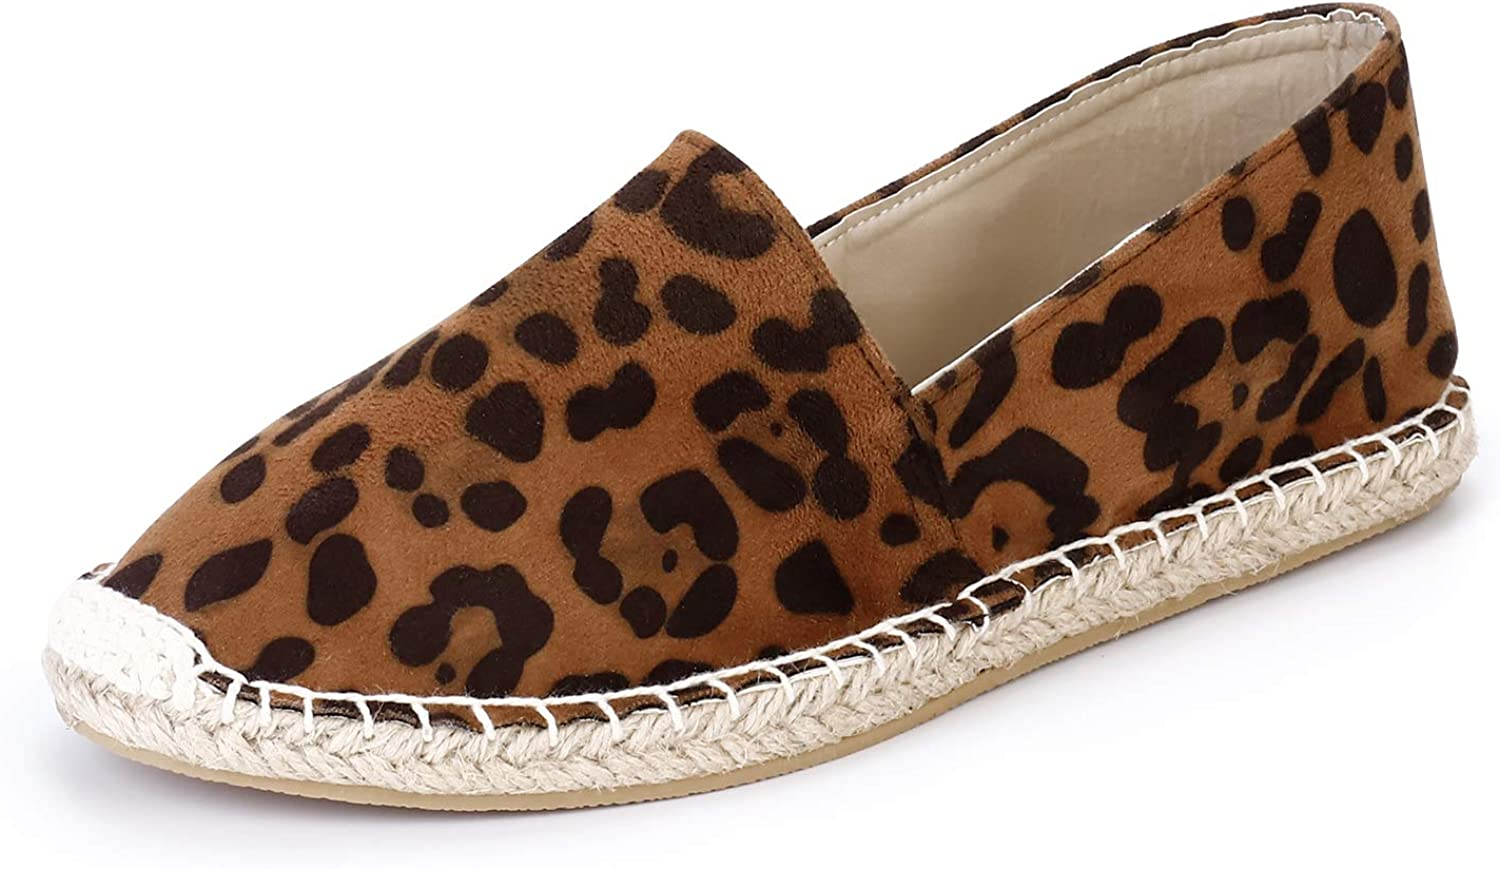 SANDALUP Women's Loafers Slip On Closed Toe Flats Espadrilles